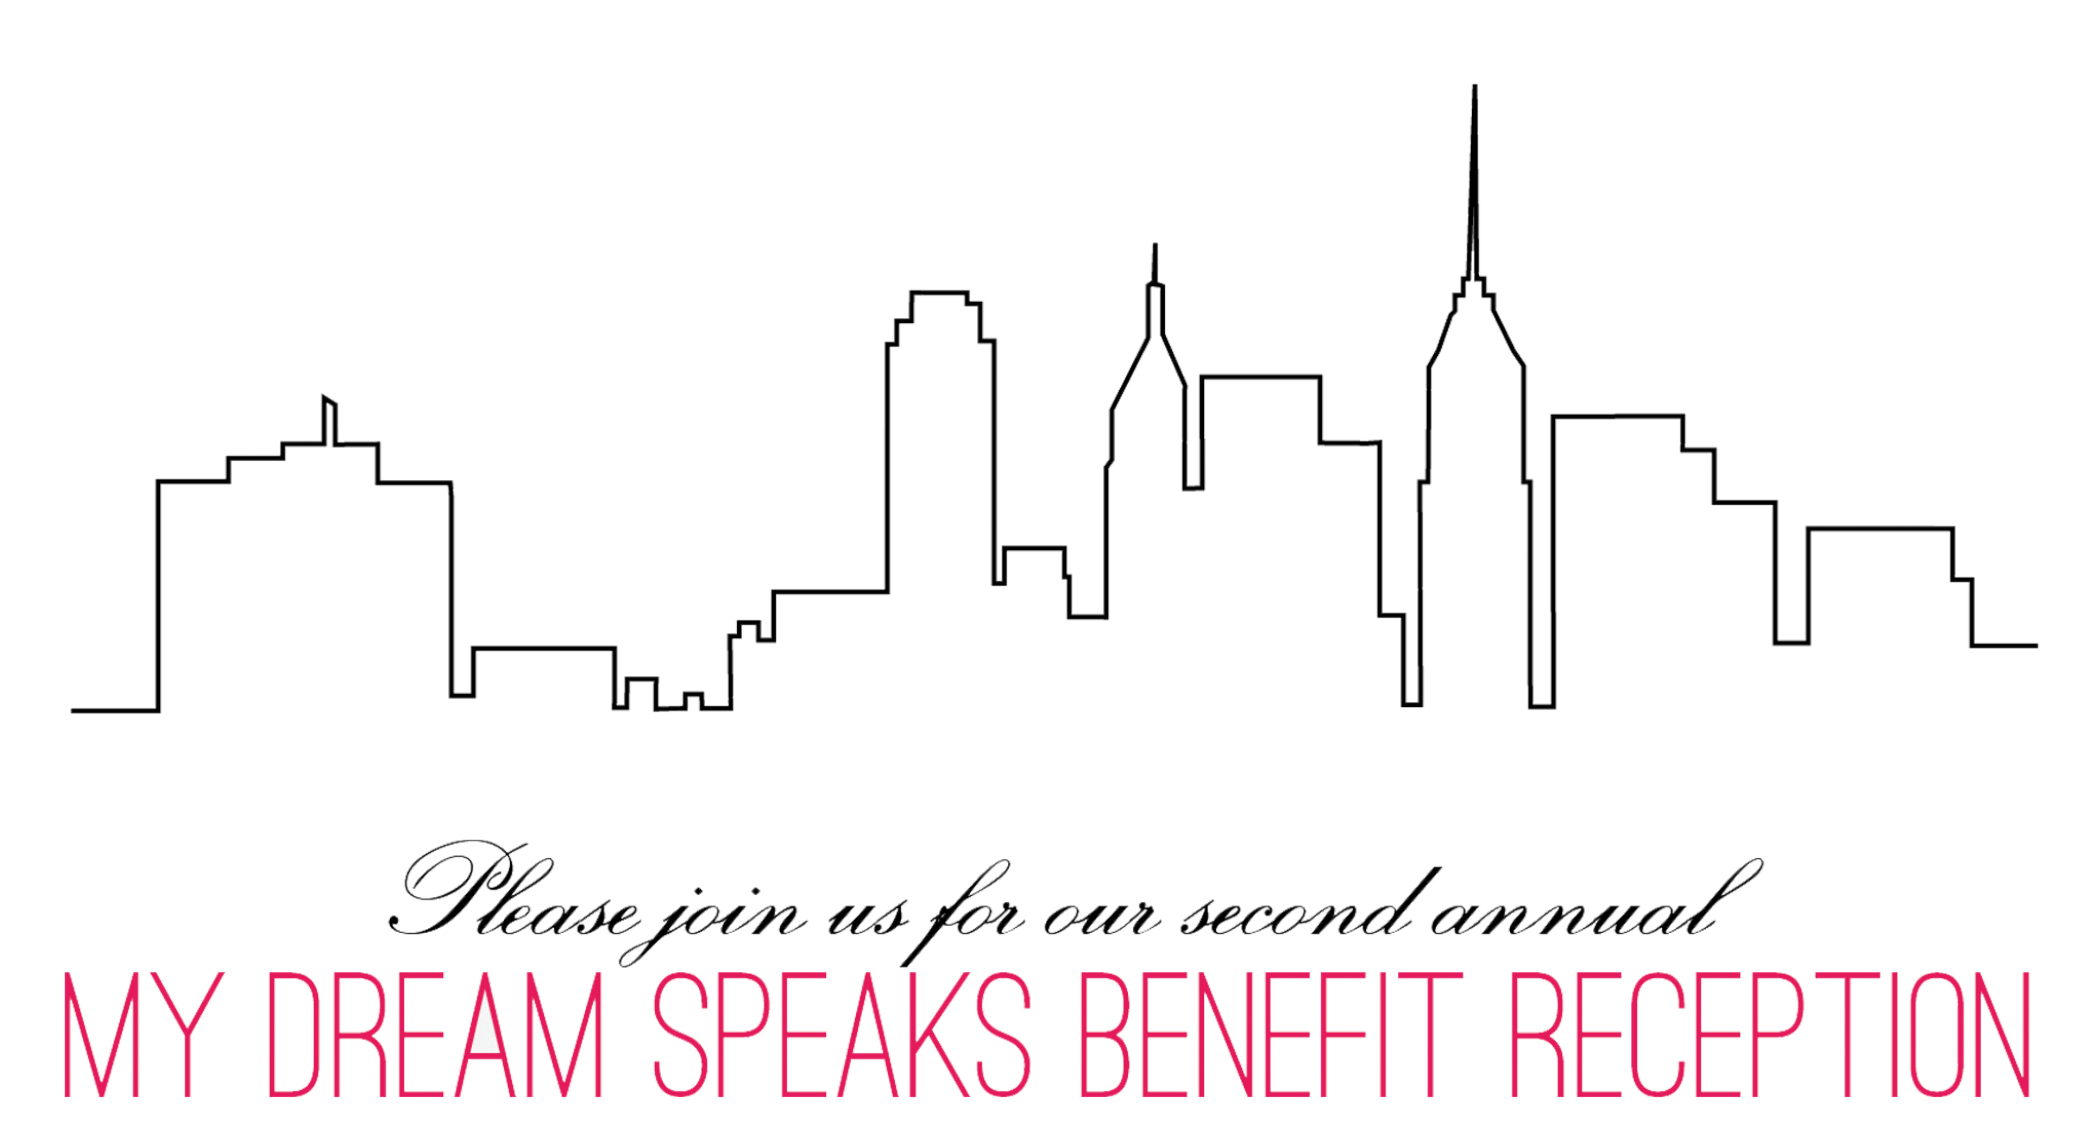 Please Join Us for our Second Annual My Dream Speaks Benefit Reception